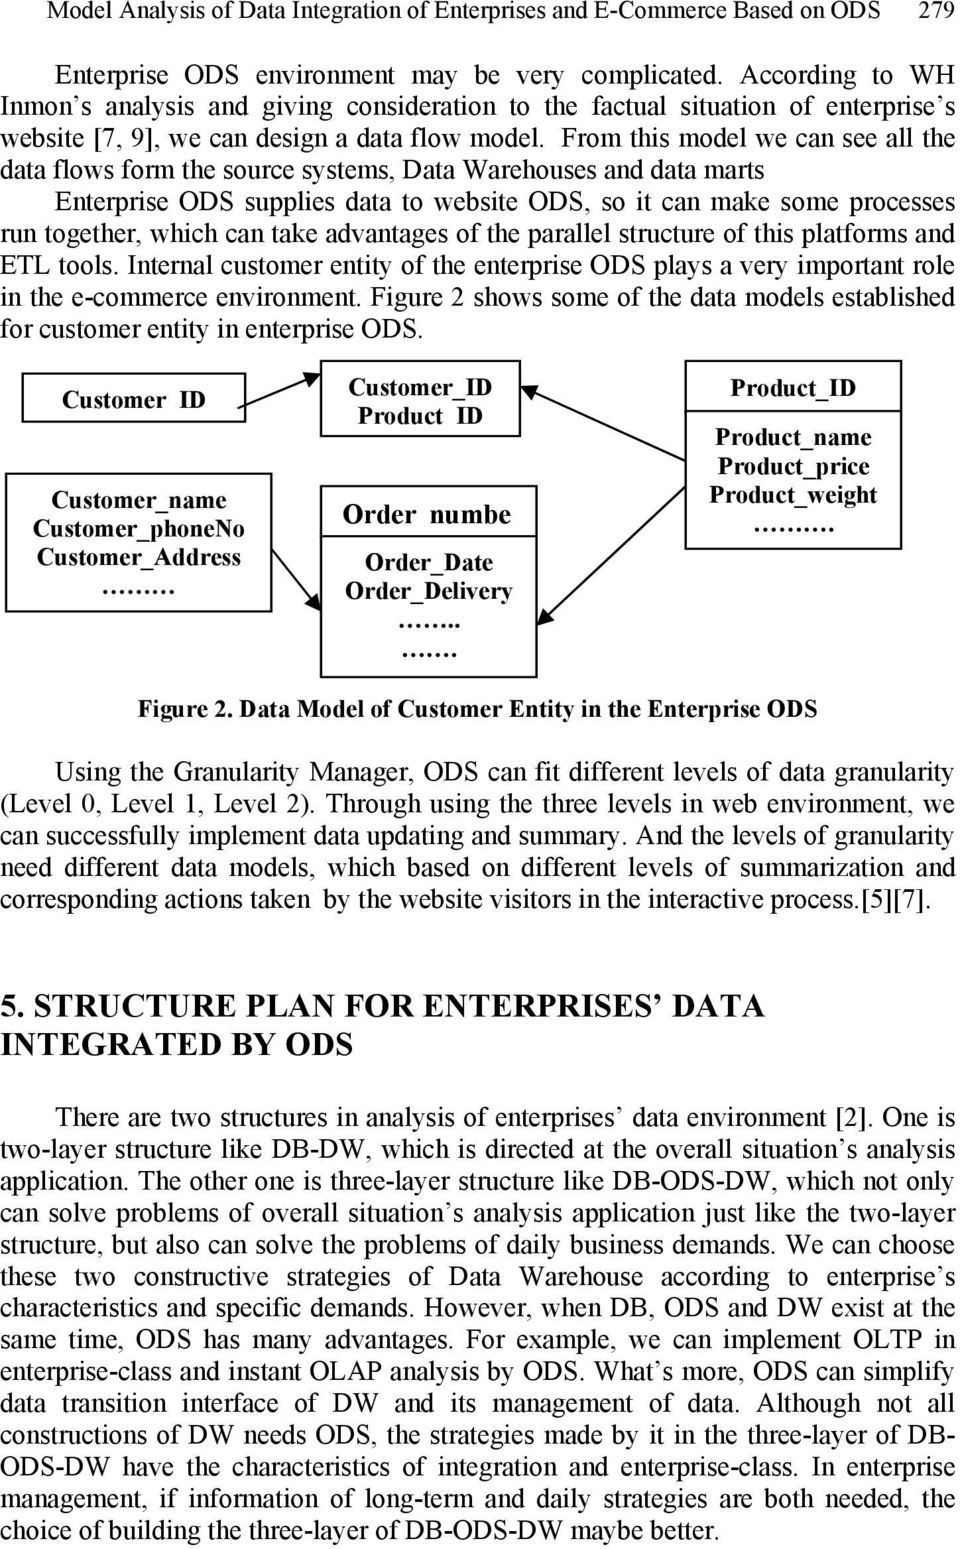 From this model we can see all the data flows form the source systems, Data Warehouses and data marts Enterprise ODS supplies data to website ODS, so it can make some processes run together, which